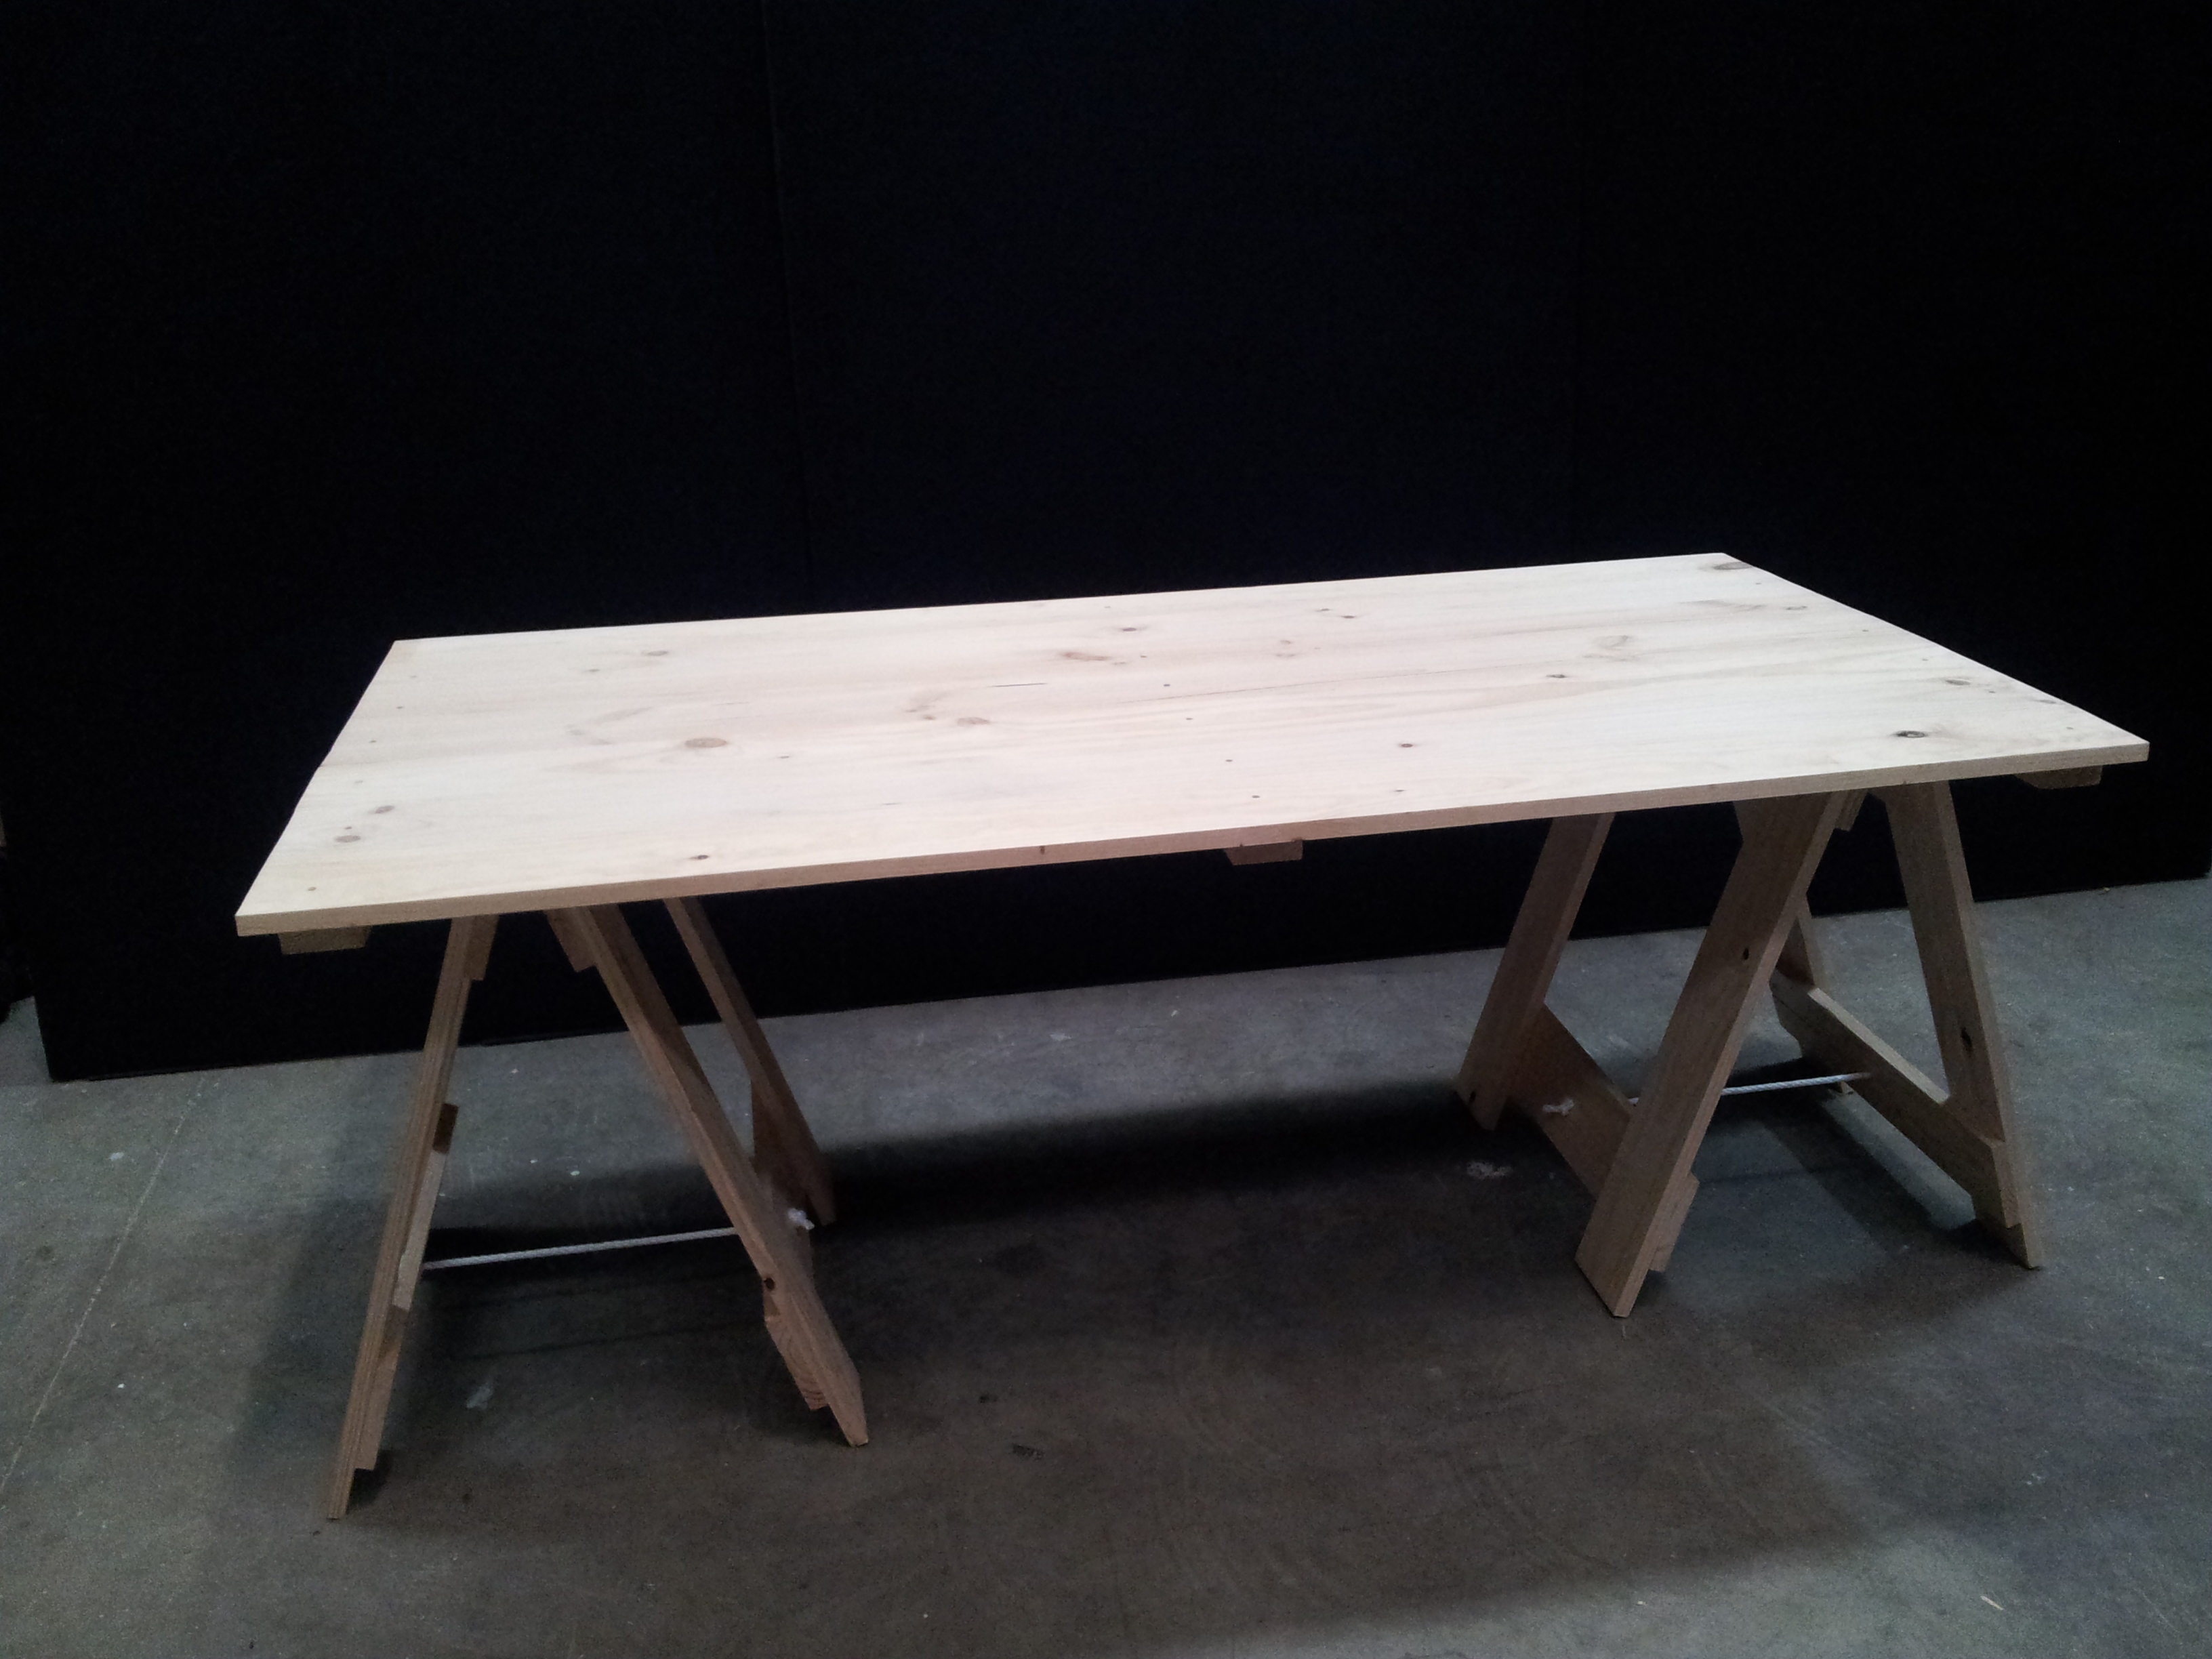 1 8m Old Style Trestle Table Folding Tables And Chairs